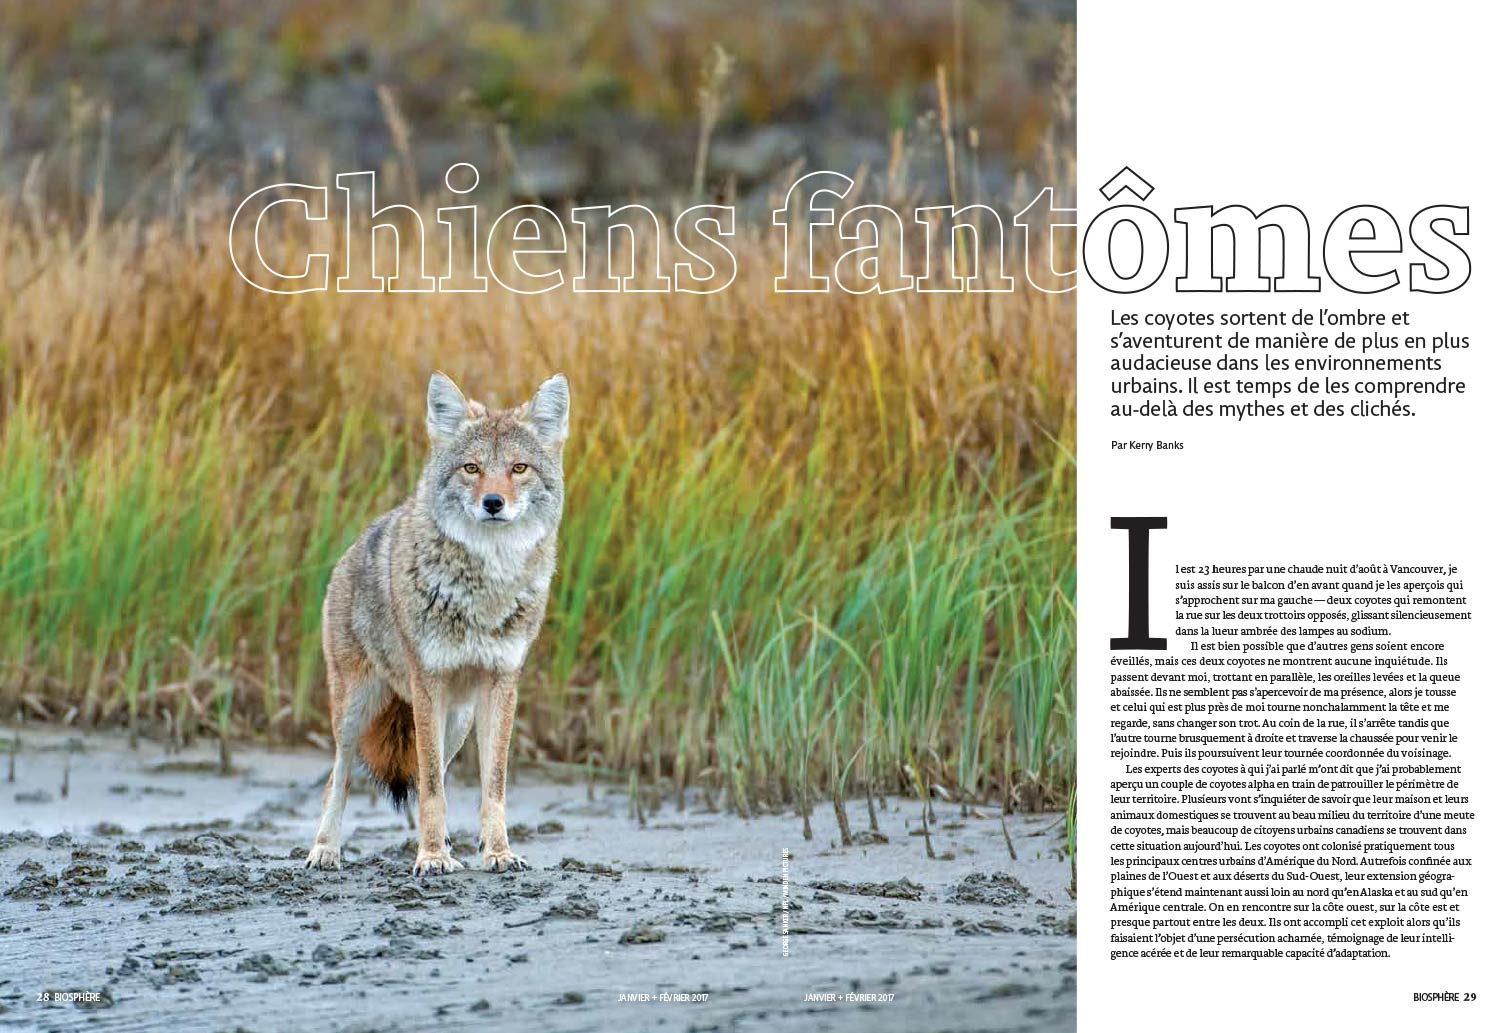 Article image with photo of a coyote in a field